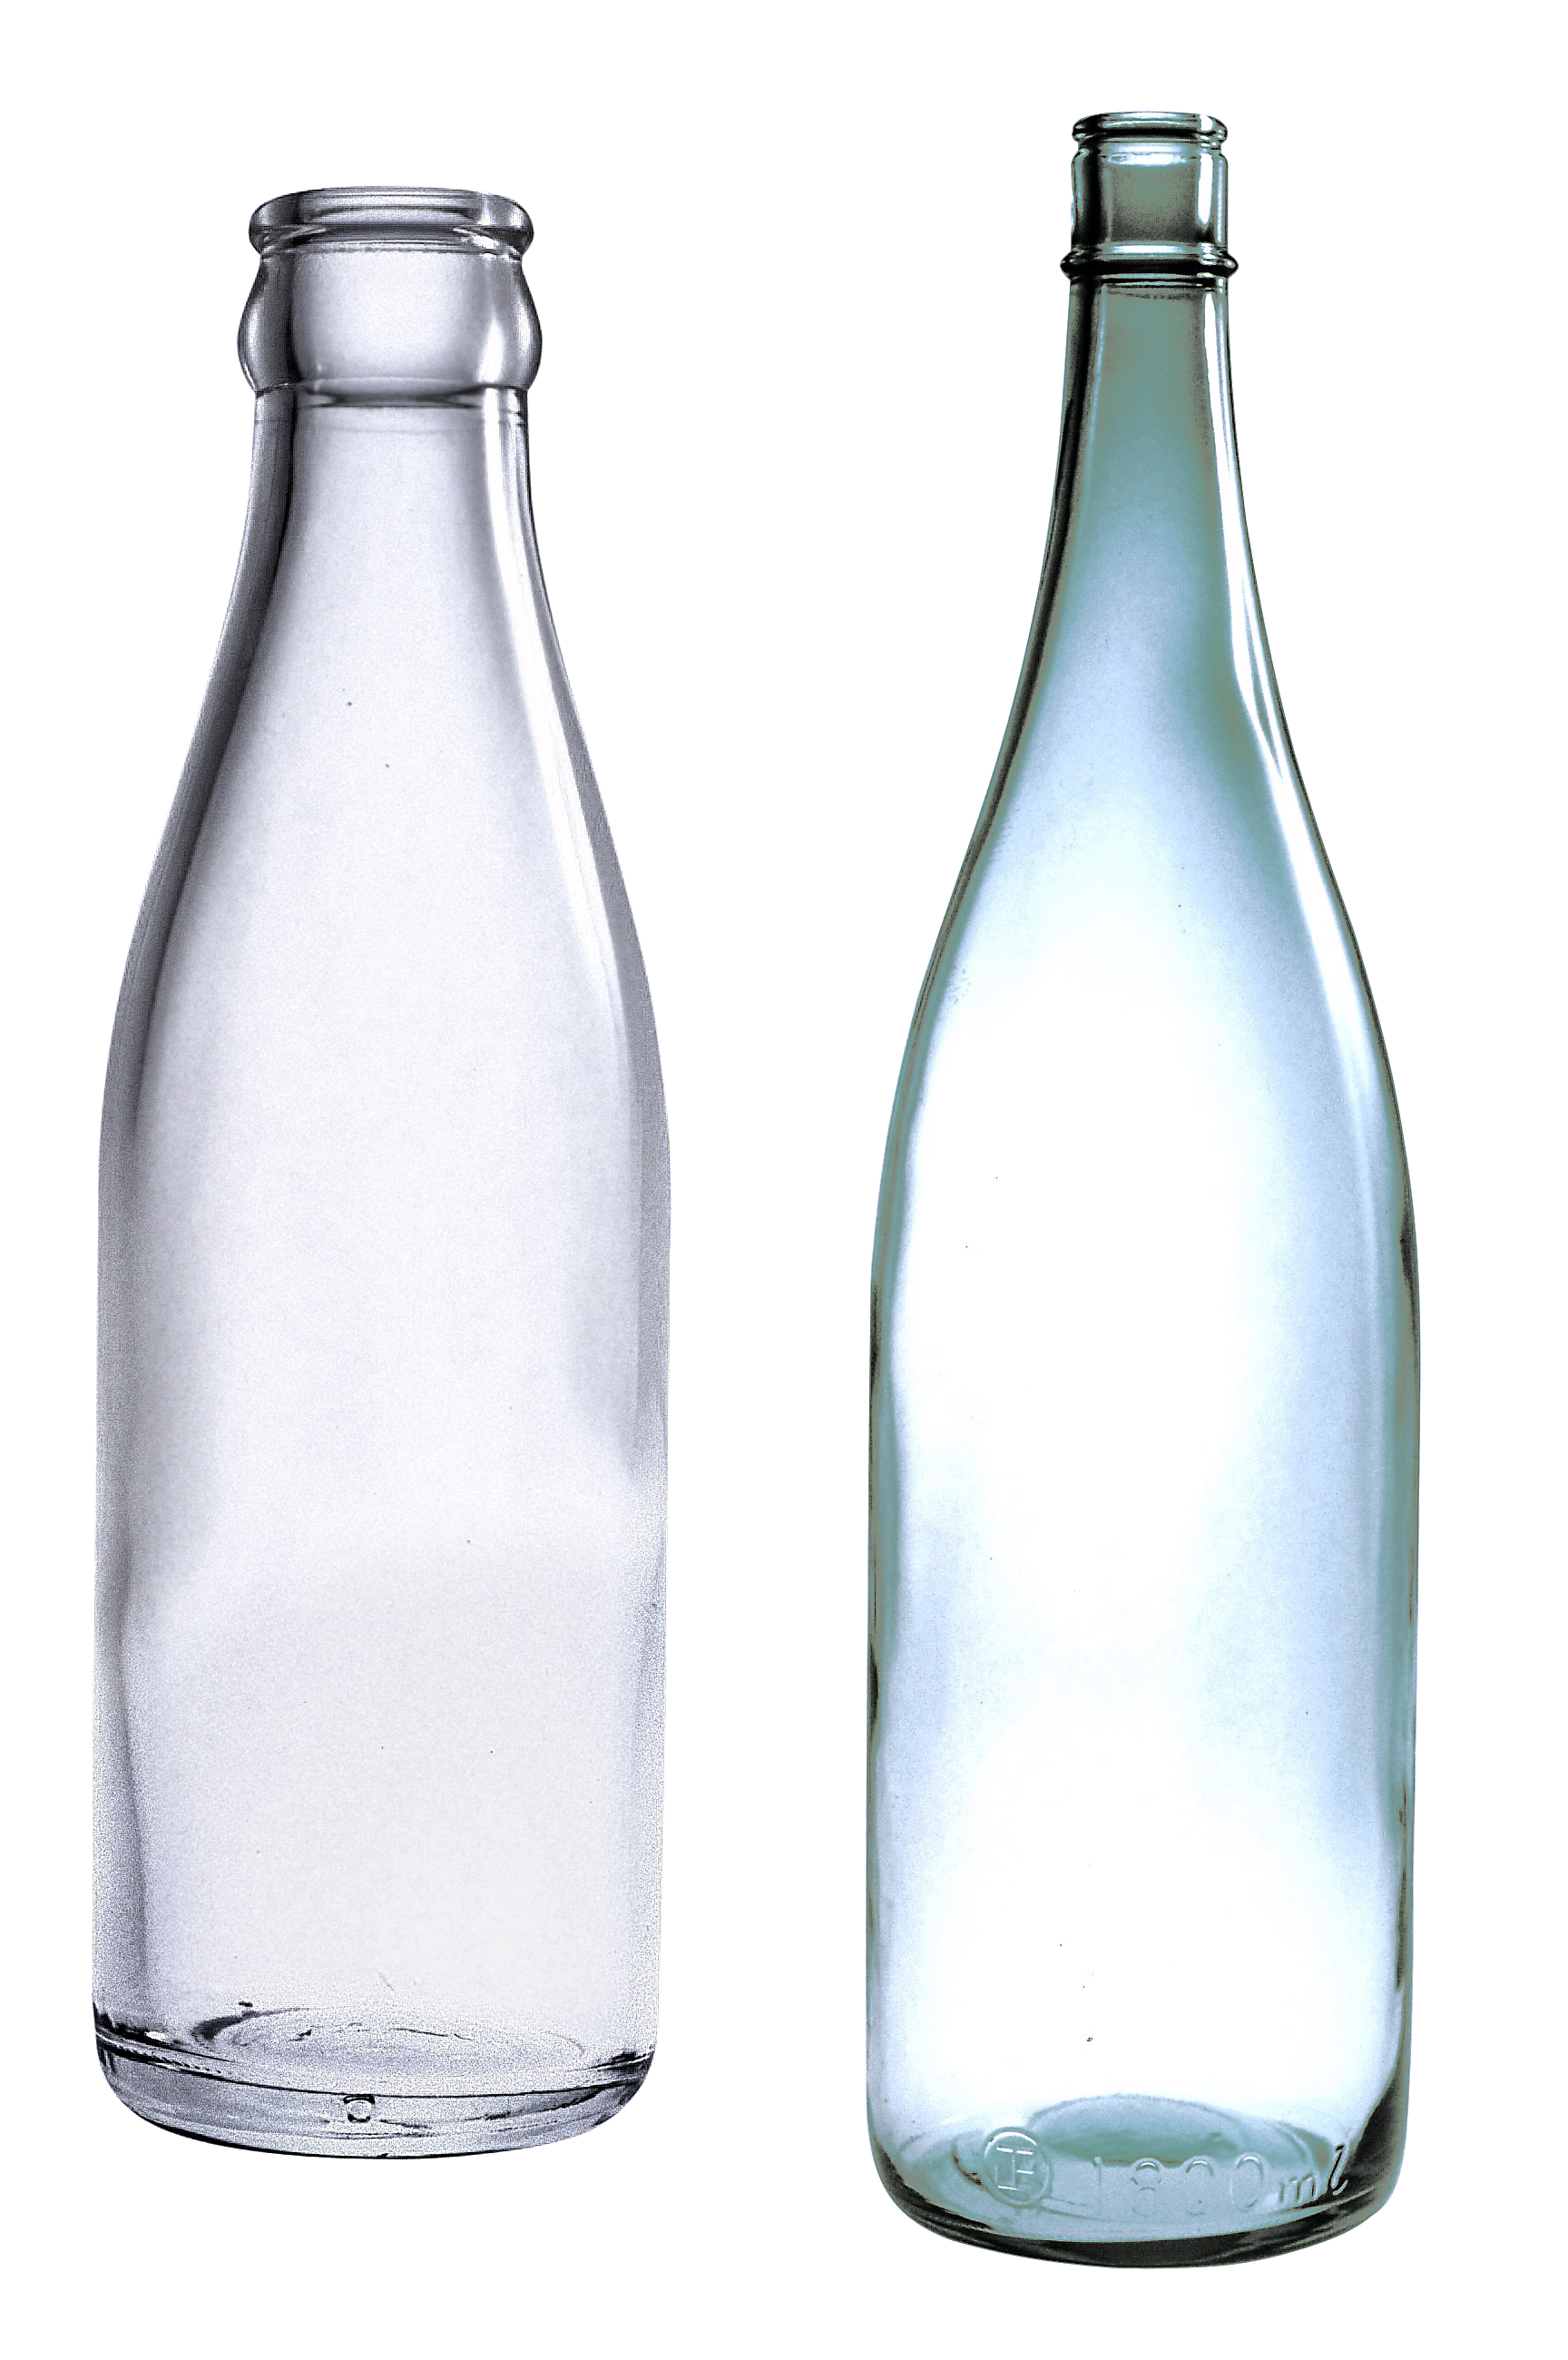 Empty bottle png. Images free download home